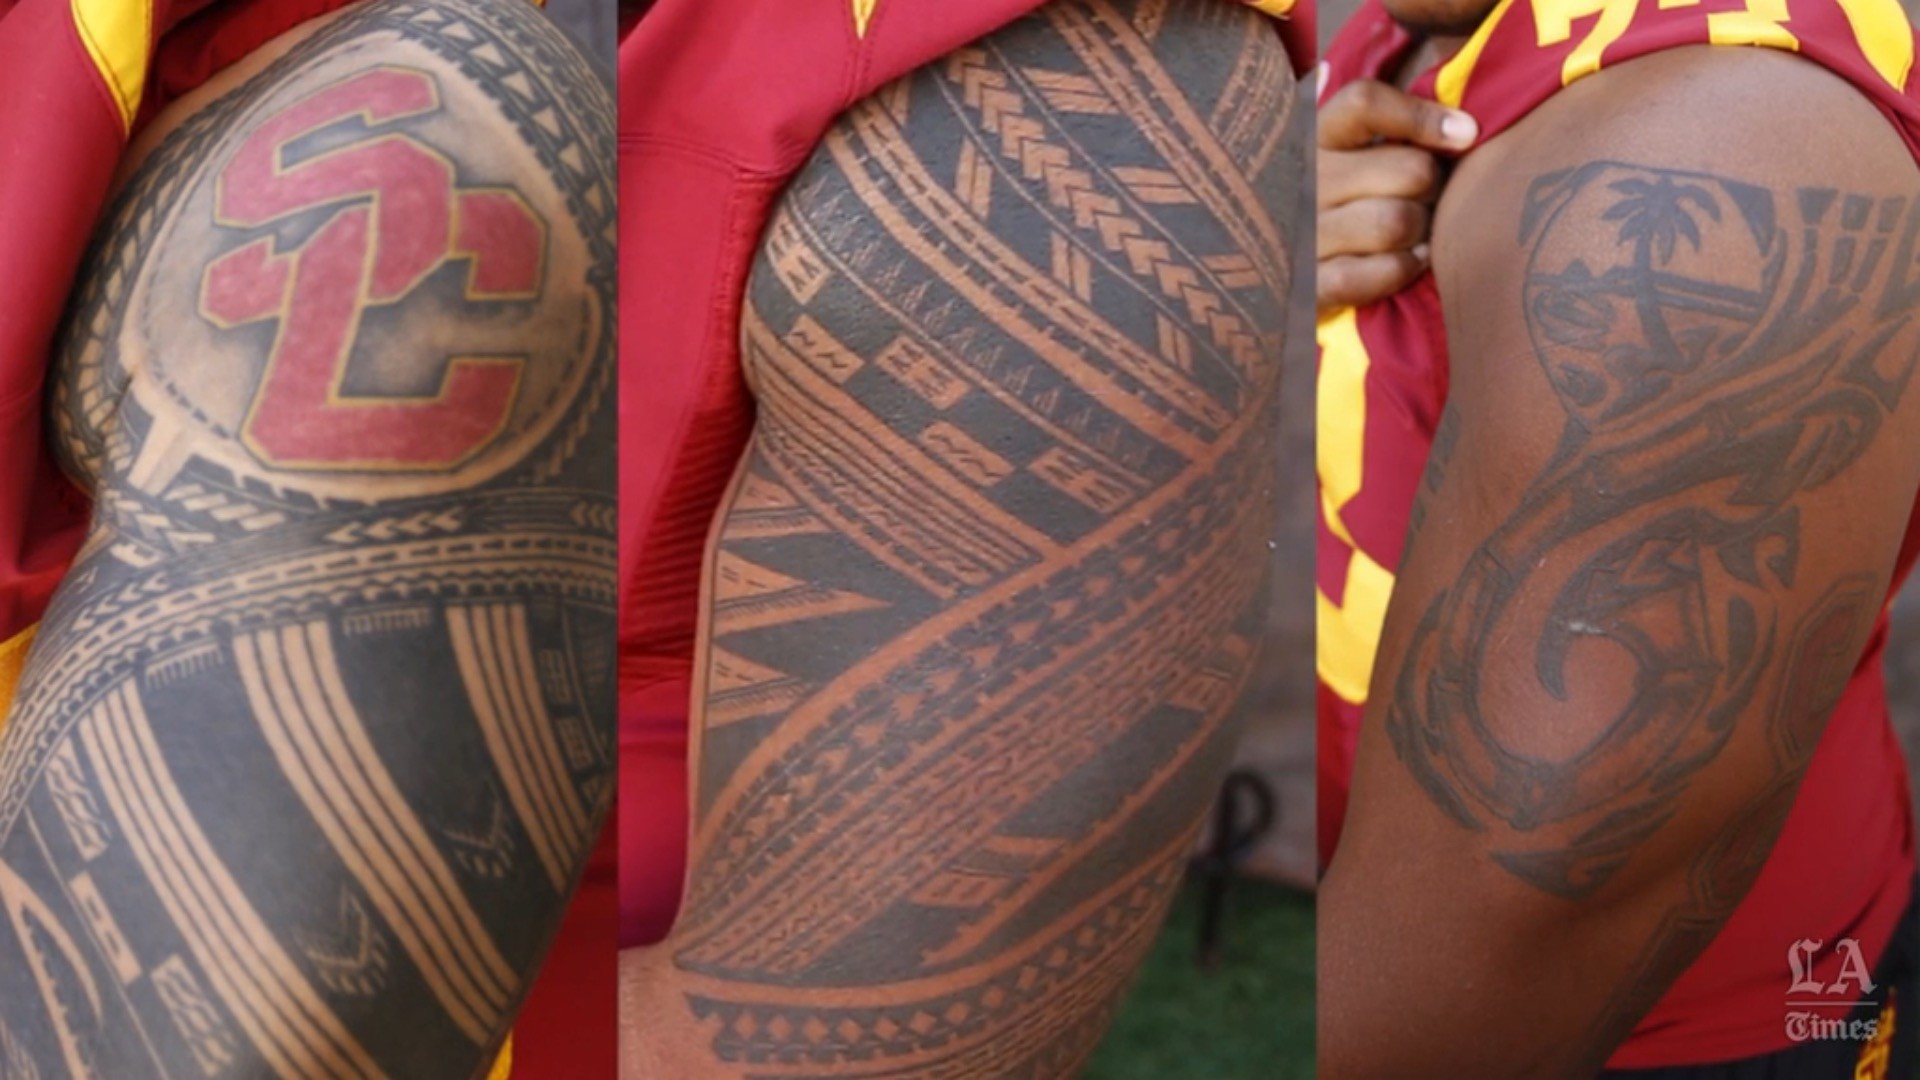 USC tattoos: Trojan linemen are armed with pride - LA Times